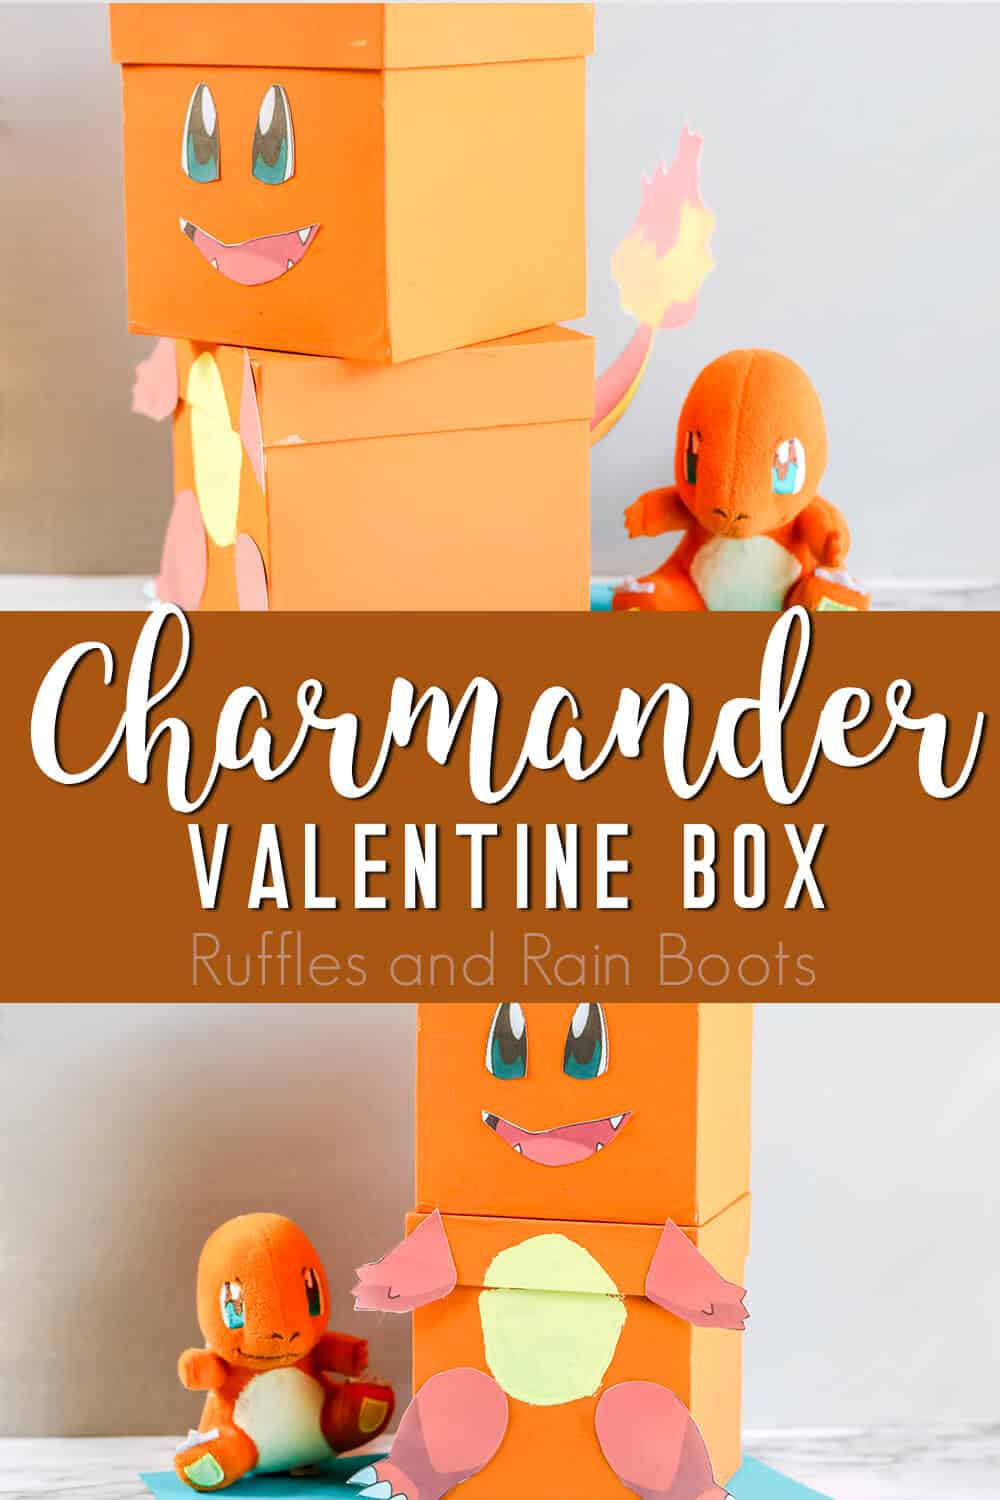 photo collage of pokemon valentine craft idea for kids with text which reads charmander valentine box for kids